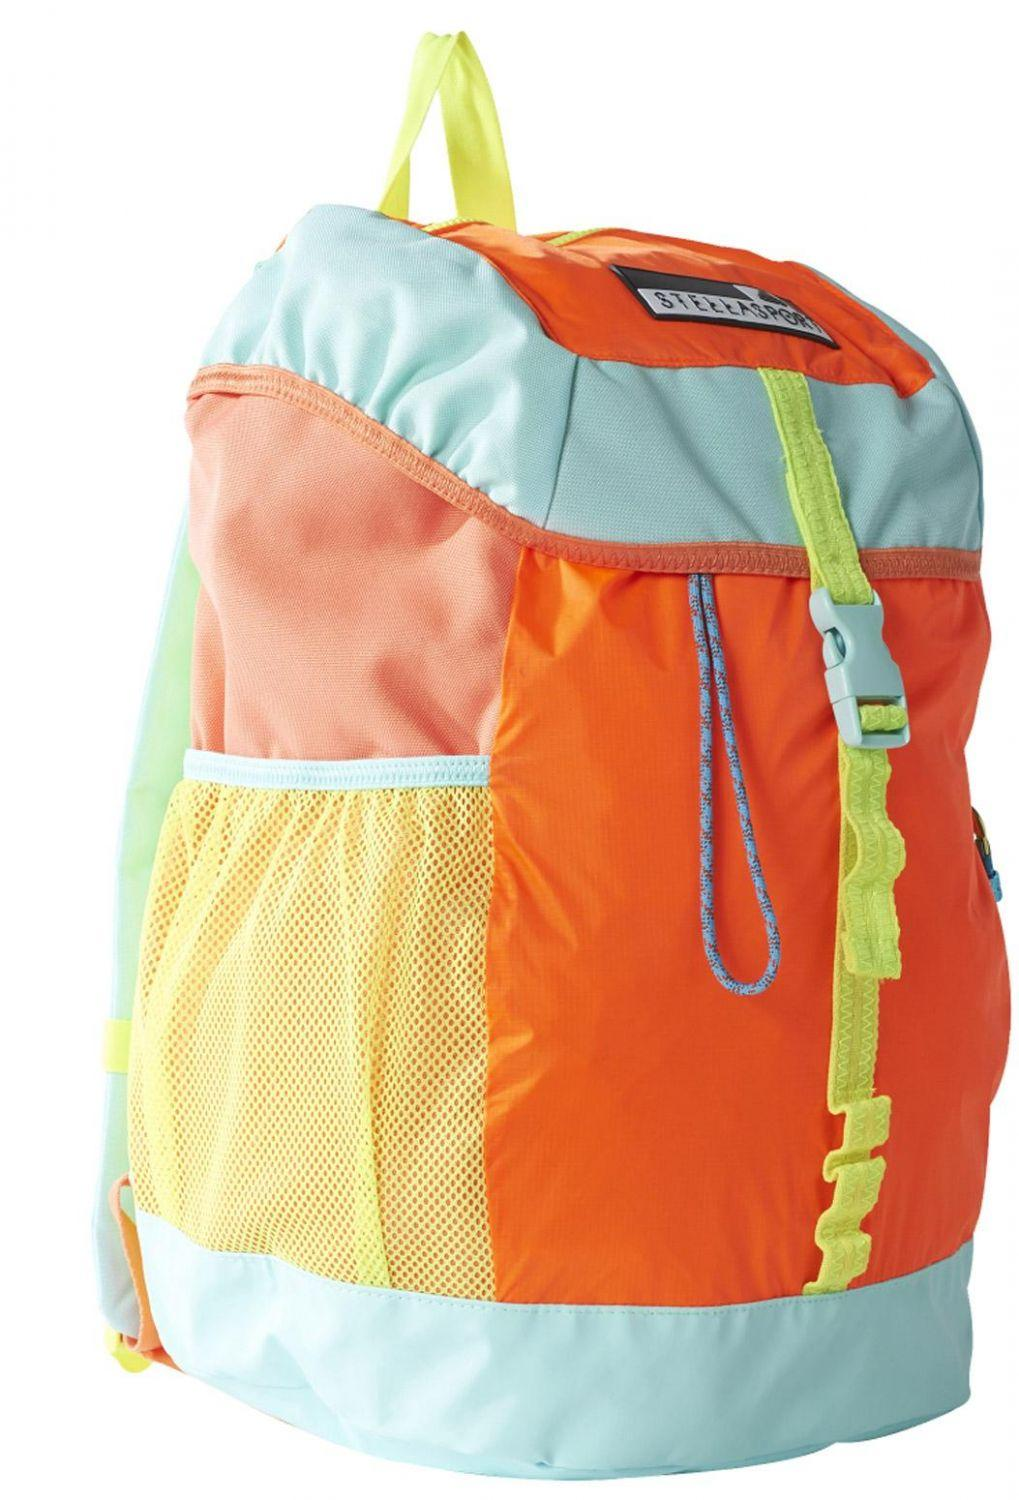 adidas Stellasport Rucksack Flap Colourblocking (Farbe: solar orange/bright yellow/radiant aqua f10)